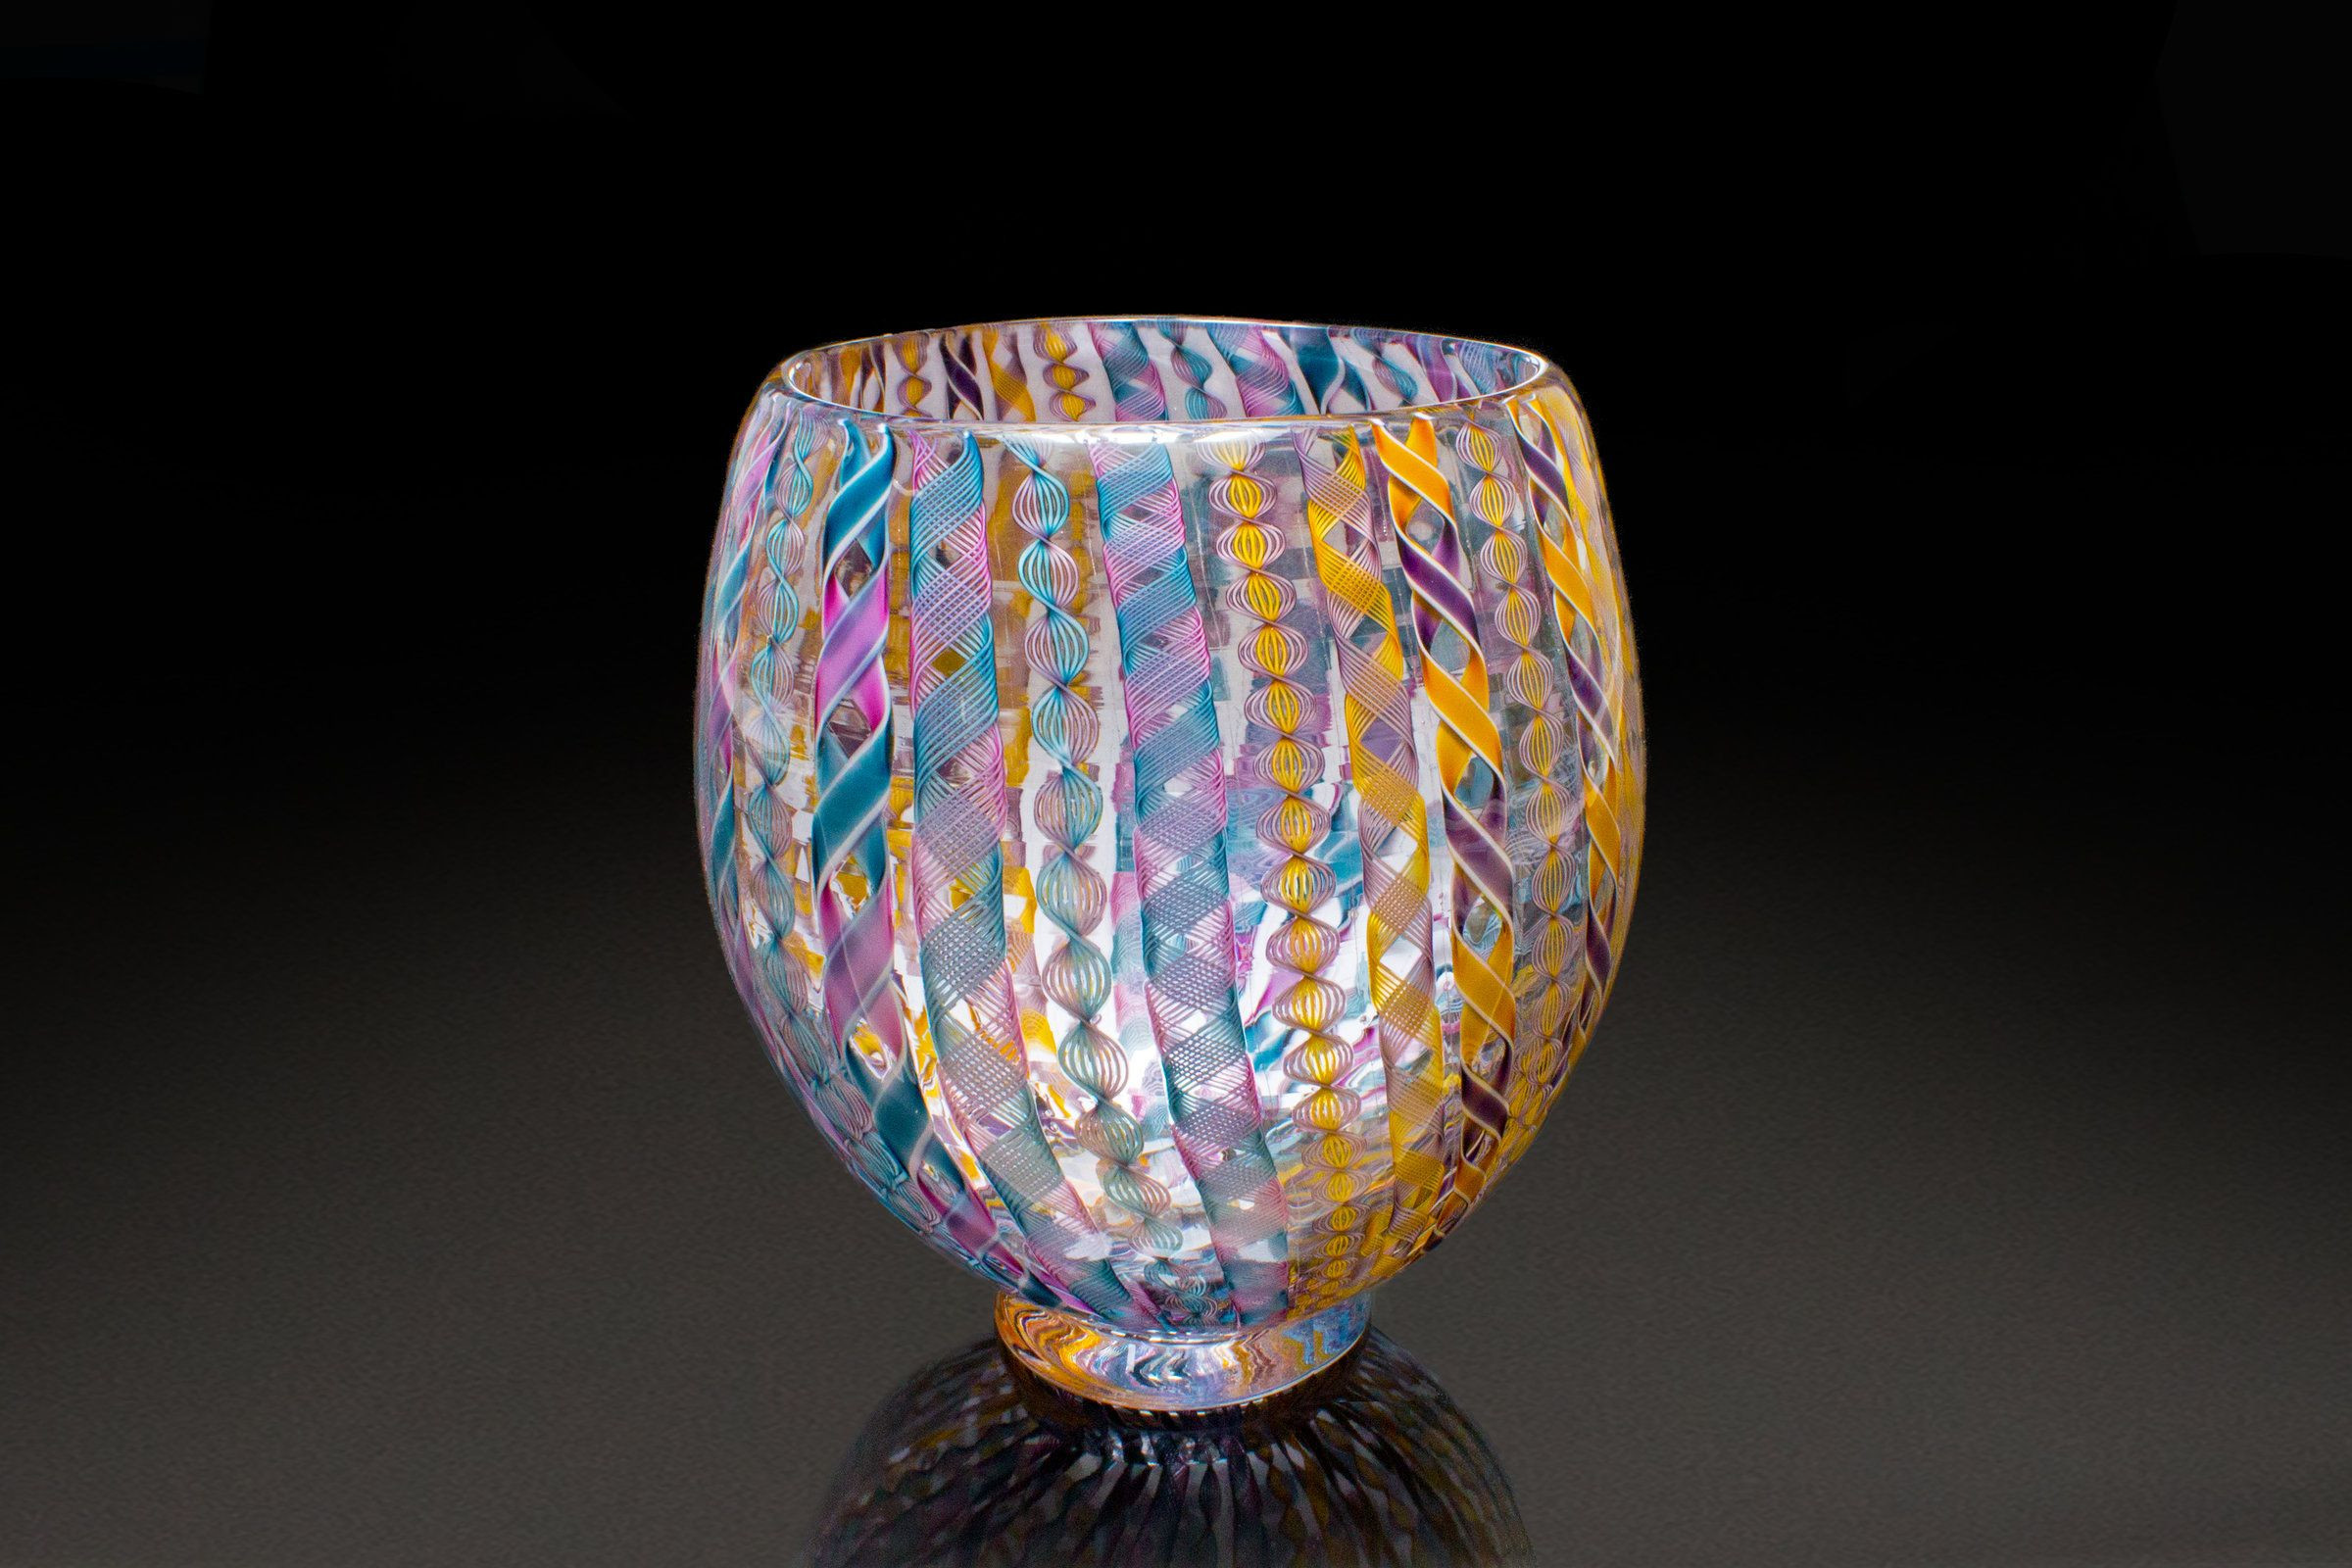 sea urchin glass vase of mardis gras zanfirico vase by april wagner art glass vase glass with regard to mardis gras zanfirico vase by april wagner this beautiful hand blown glass vessel features